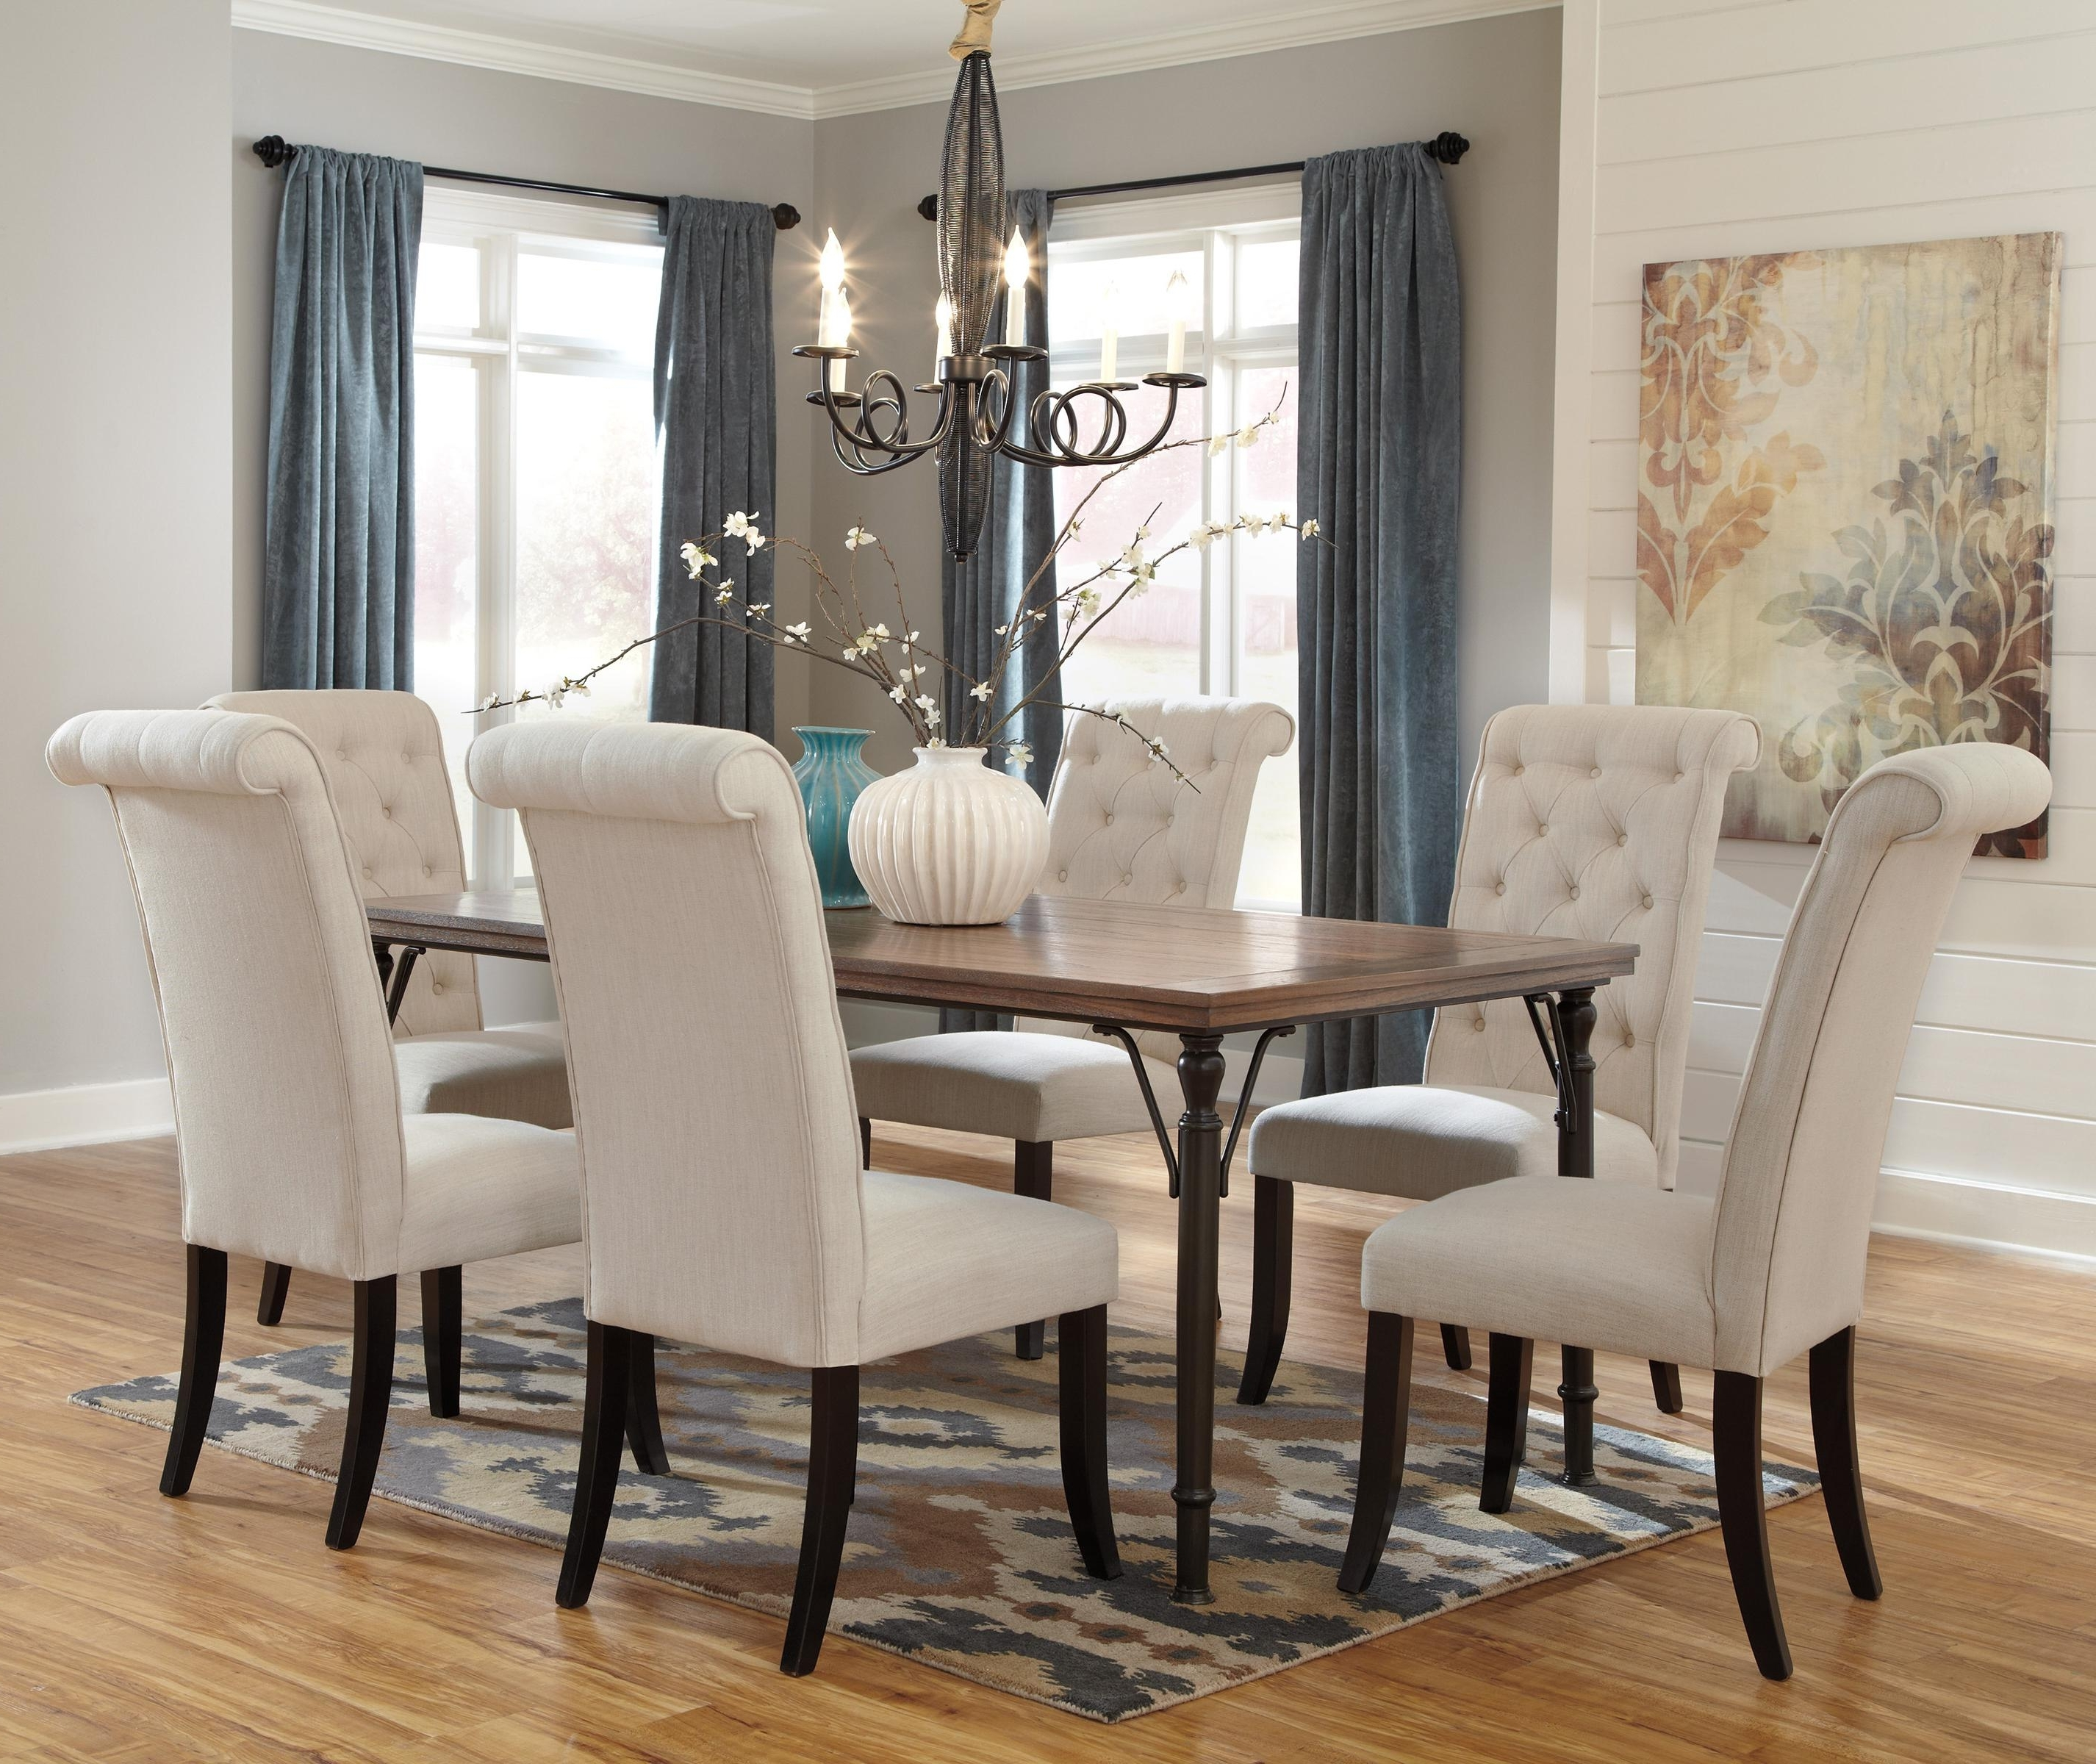 Recent 7 Piece Rectangular Dining Room Table Set W/ Wood Top & Metal Legs Throughout Dining Room Tables (View 24 of 25)